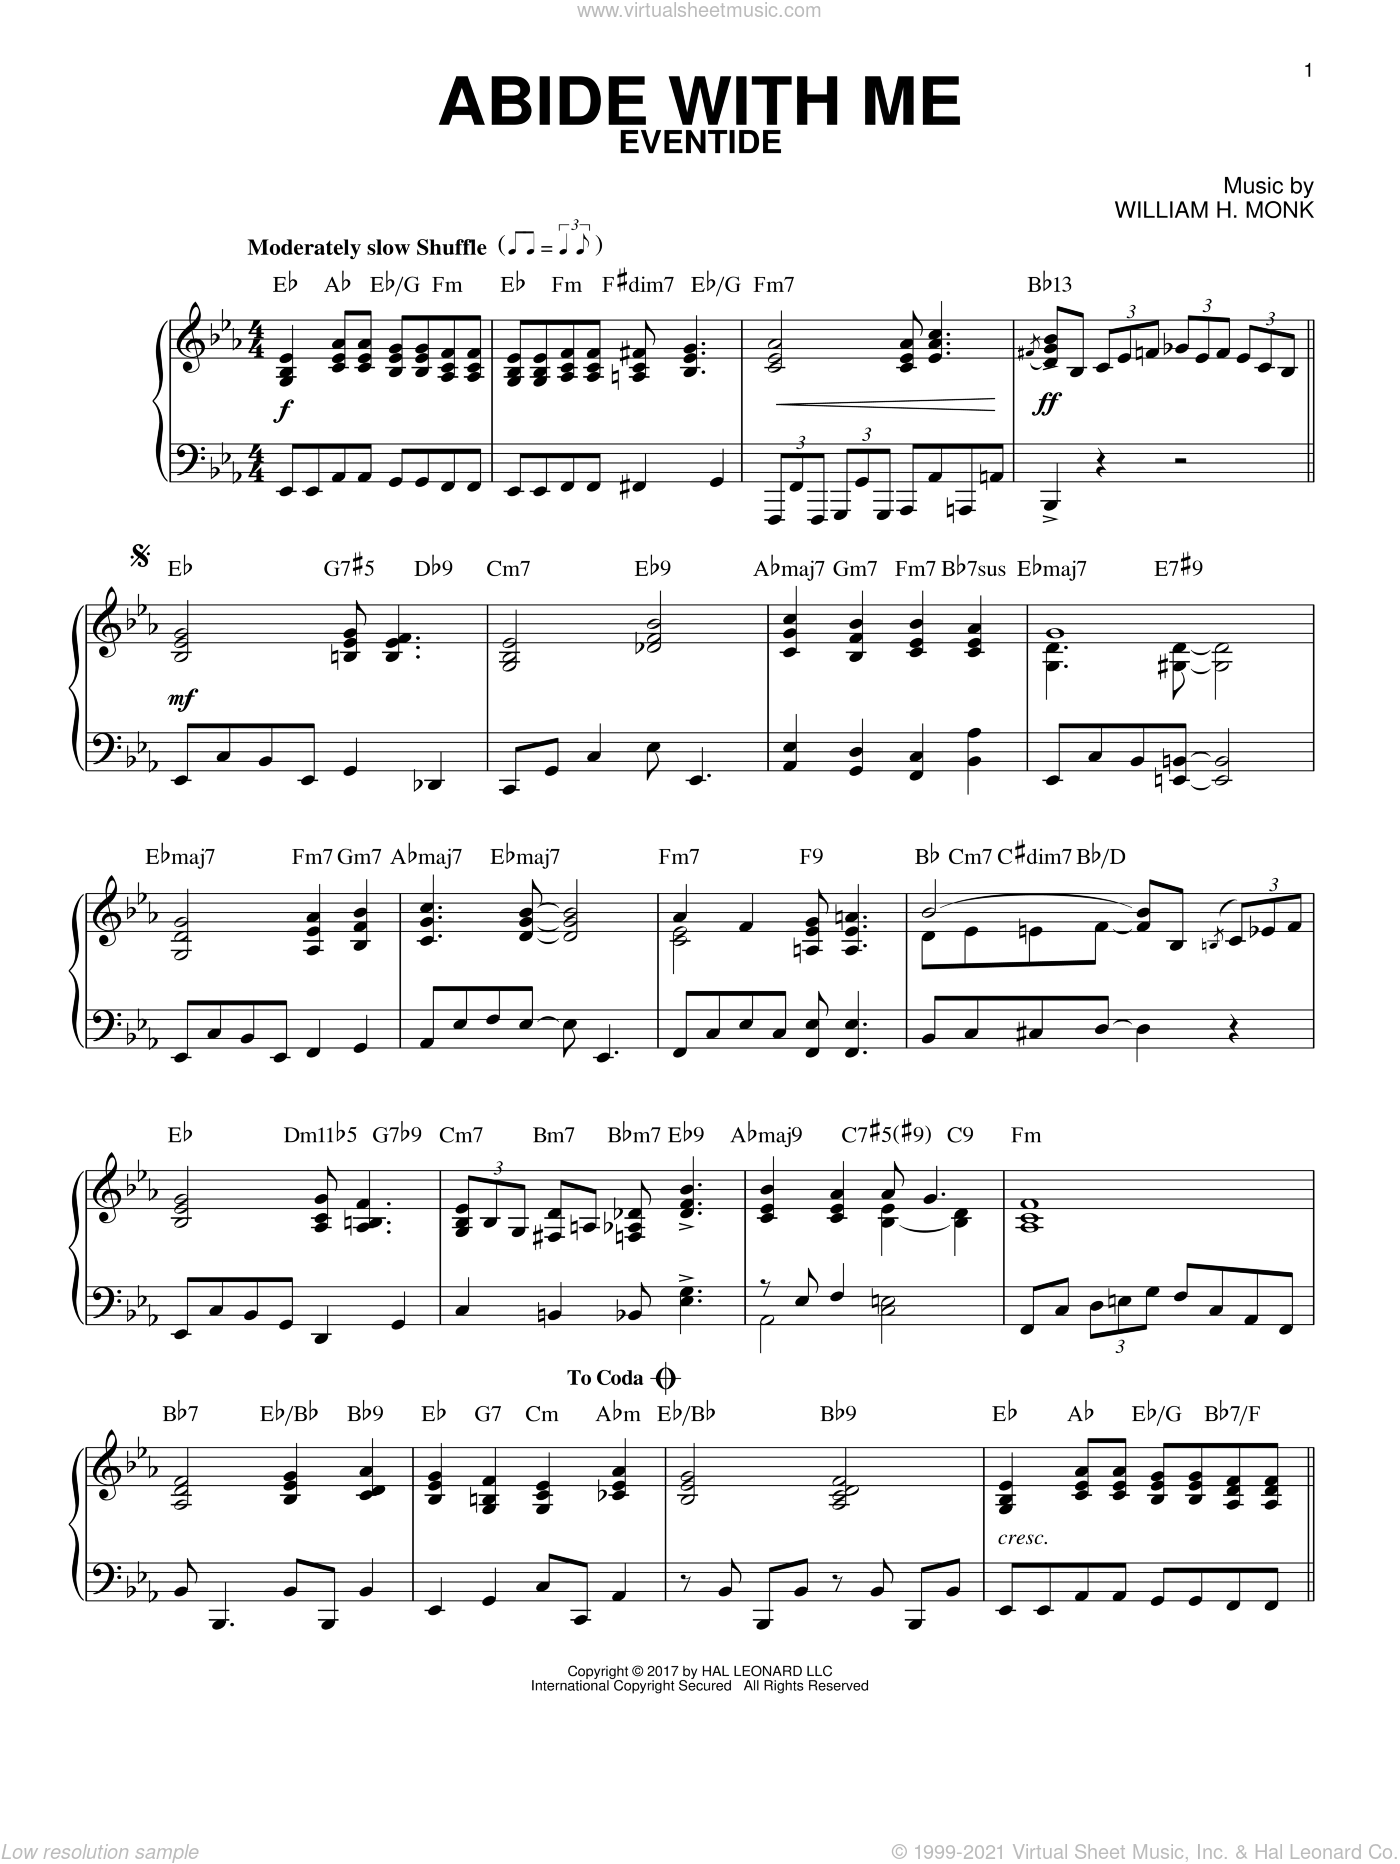 Abide With Me sheet music for piano solo by William Henry Monk and Henry F. Lyte, intermediate skill level